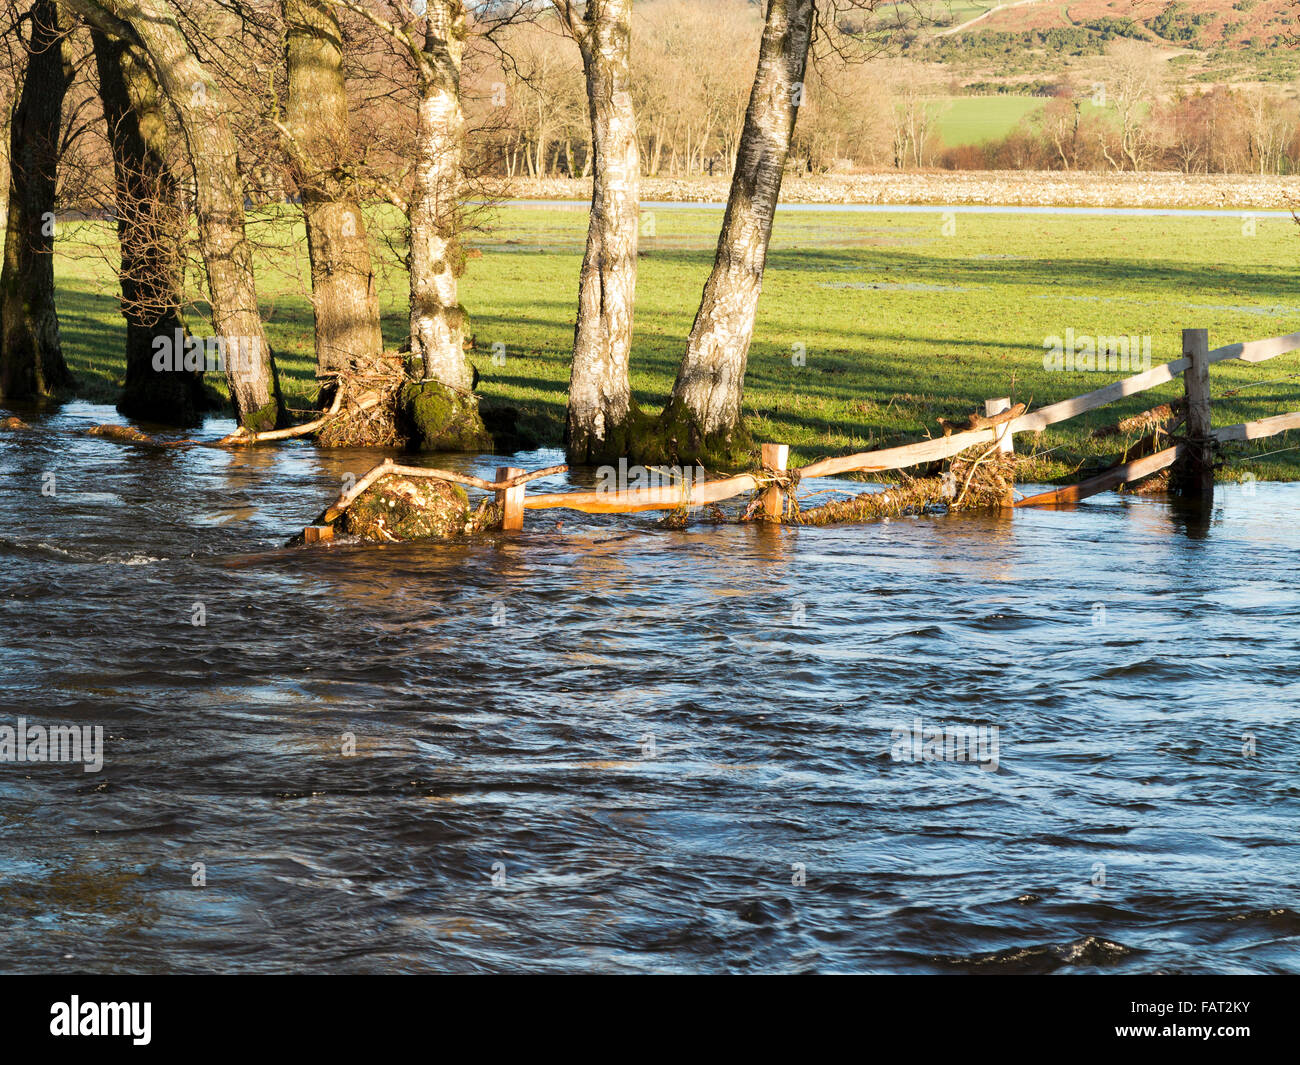 Partly submerged wooden fence containing flood debris and submerged trees on edge of field - Stock Image